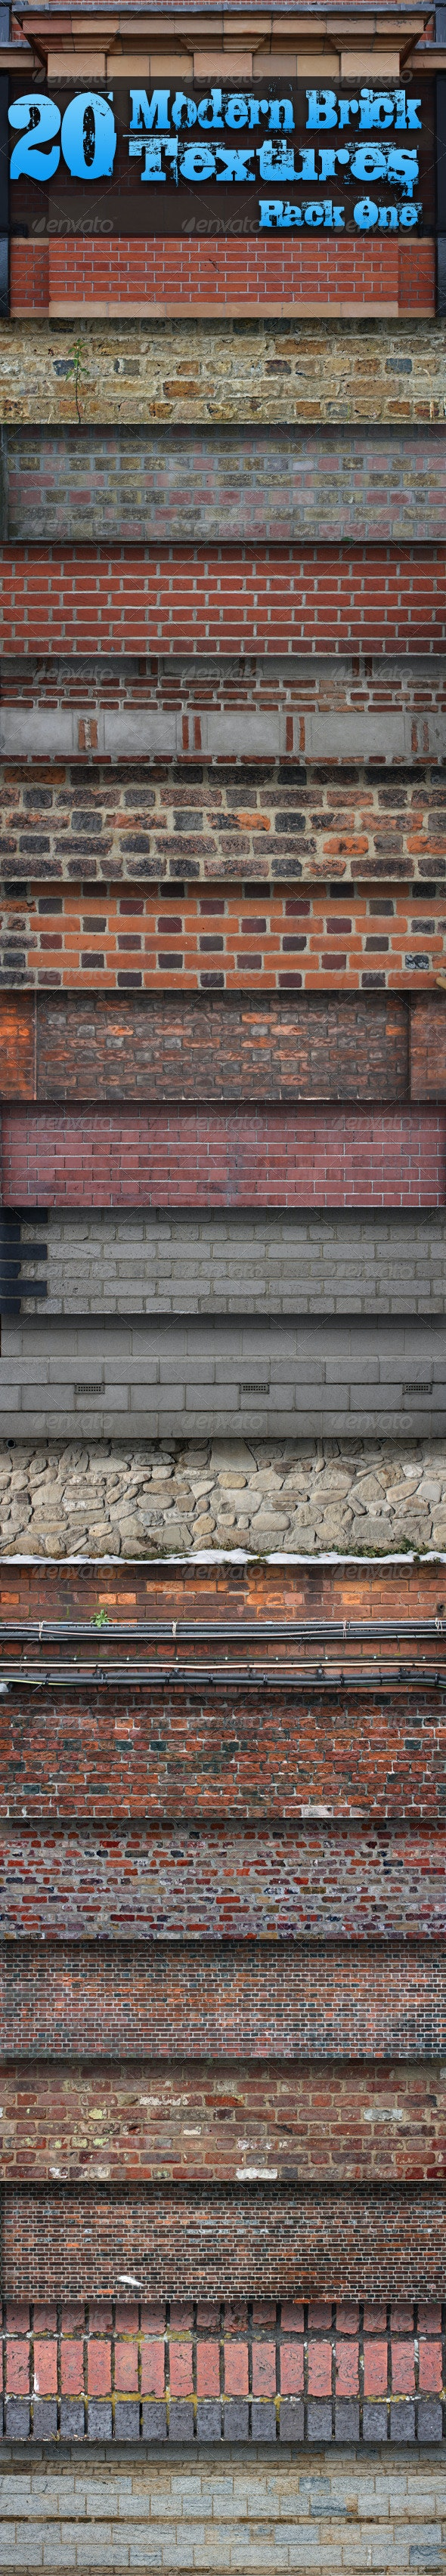 20 Modern Brick Textures - Pack One  - Miscellaneous Textures